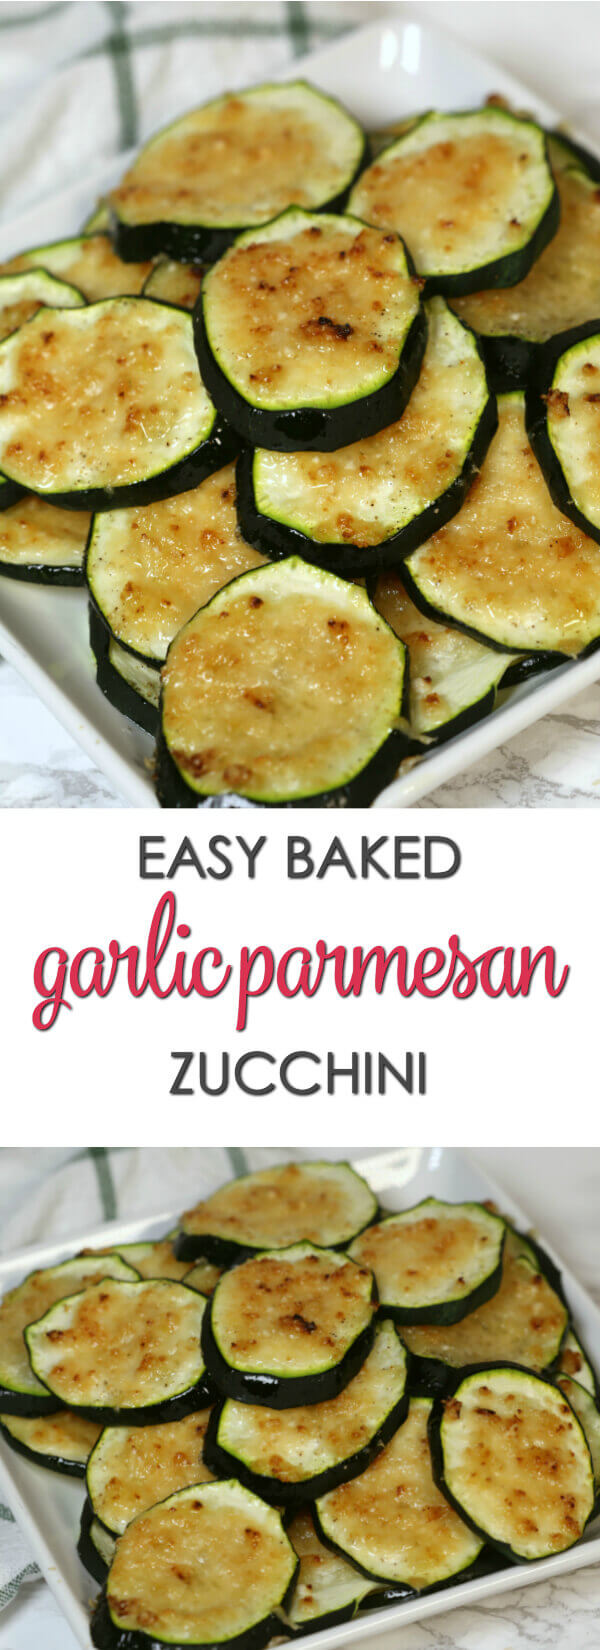 Baked Garlic Parmesan Zucchini - this tasty side dish is my favorite easy zucchini recipe